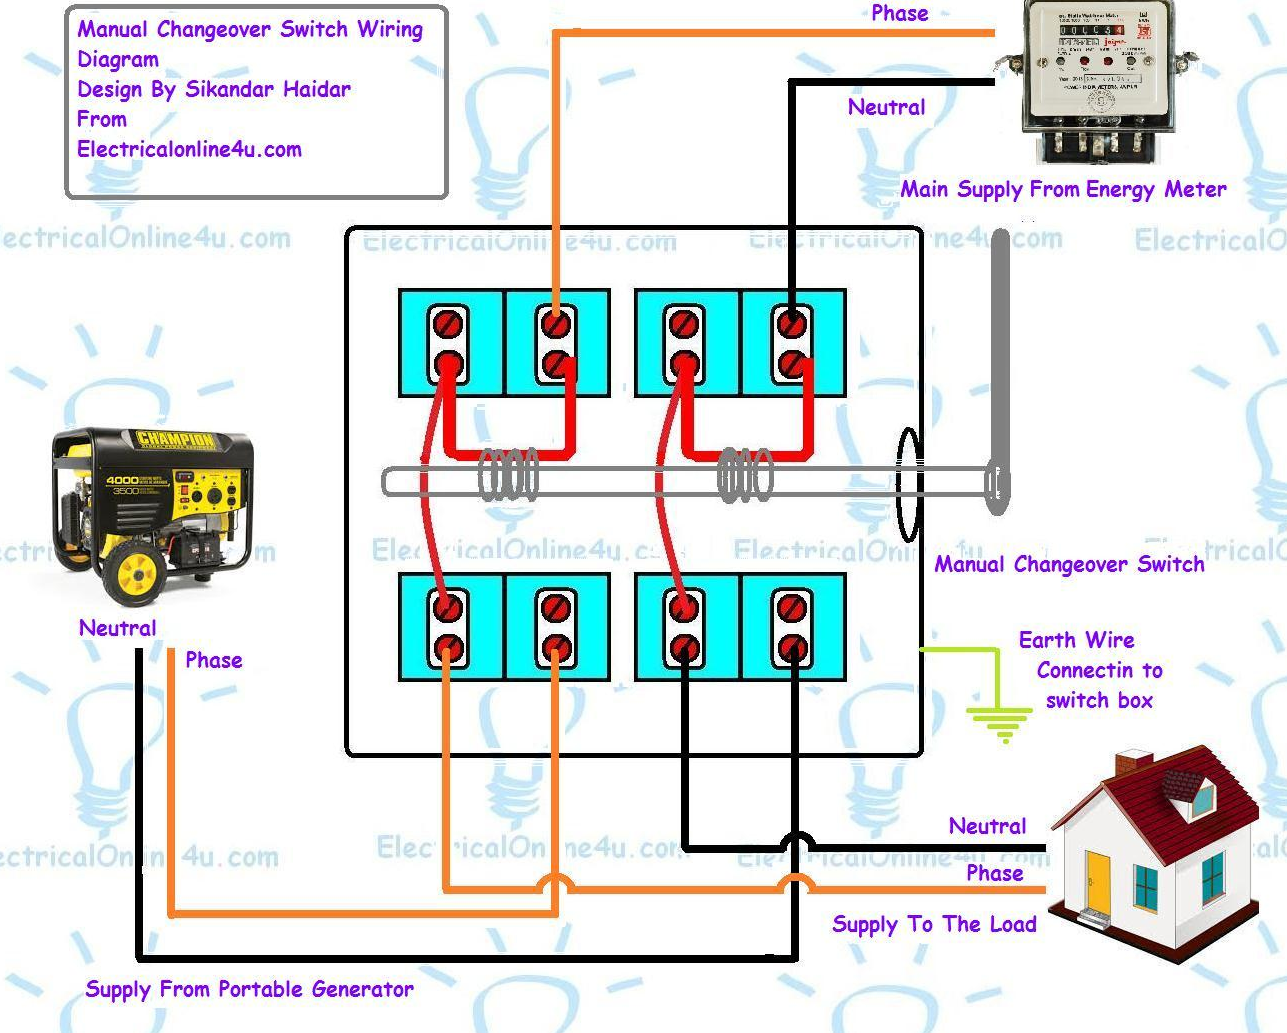 manual%2Bchangeover%2Bswitch%2Bwiring%2Bdiagram manual changeover switch wiring diagram for portable generator generator wiring diagrams at gsmx.co